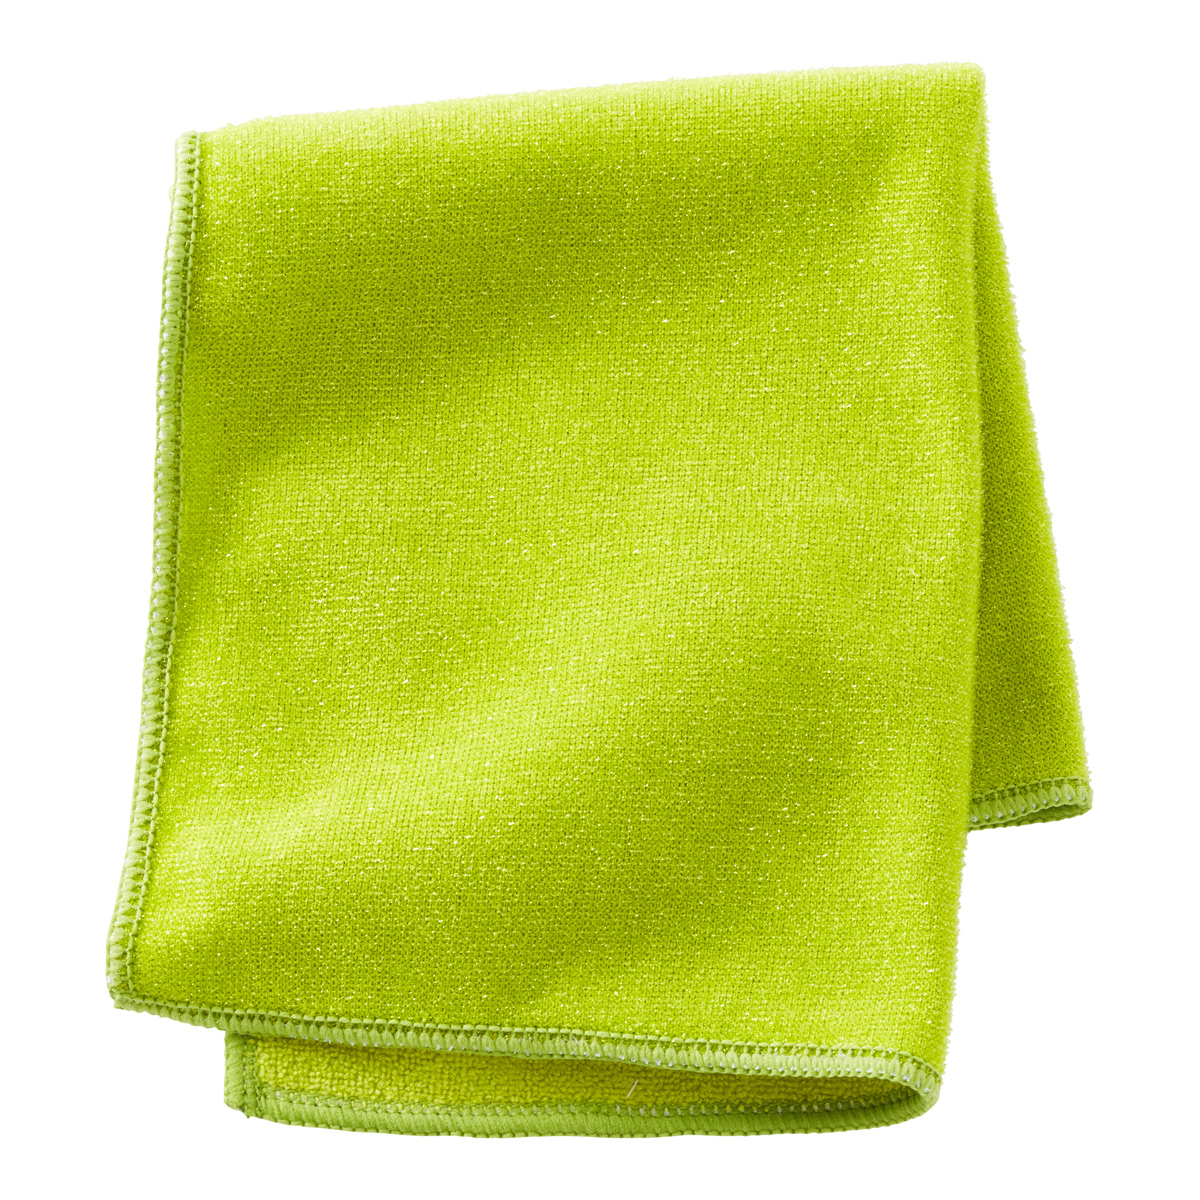 All Surface Cloth